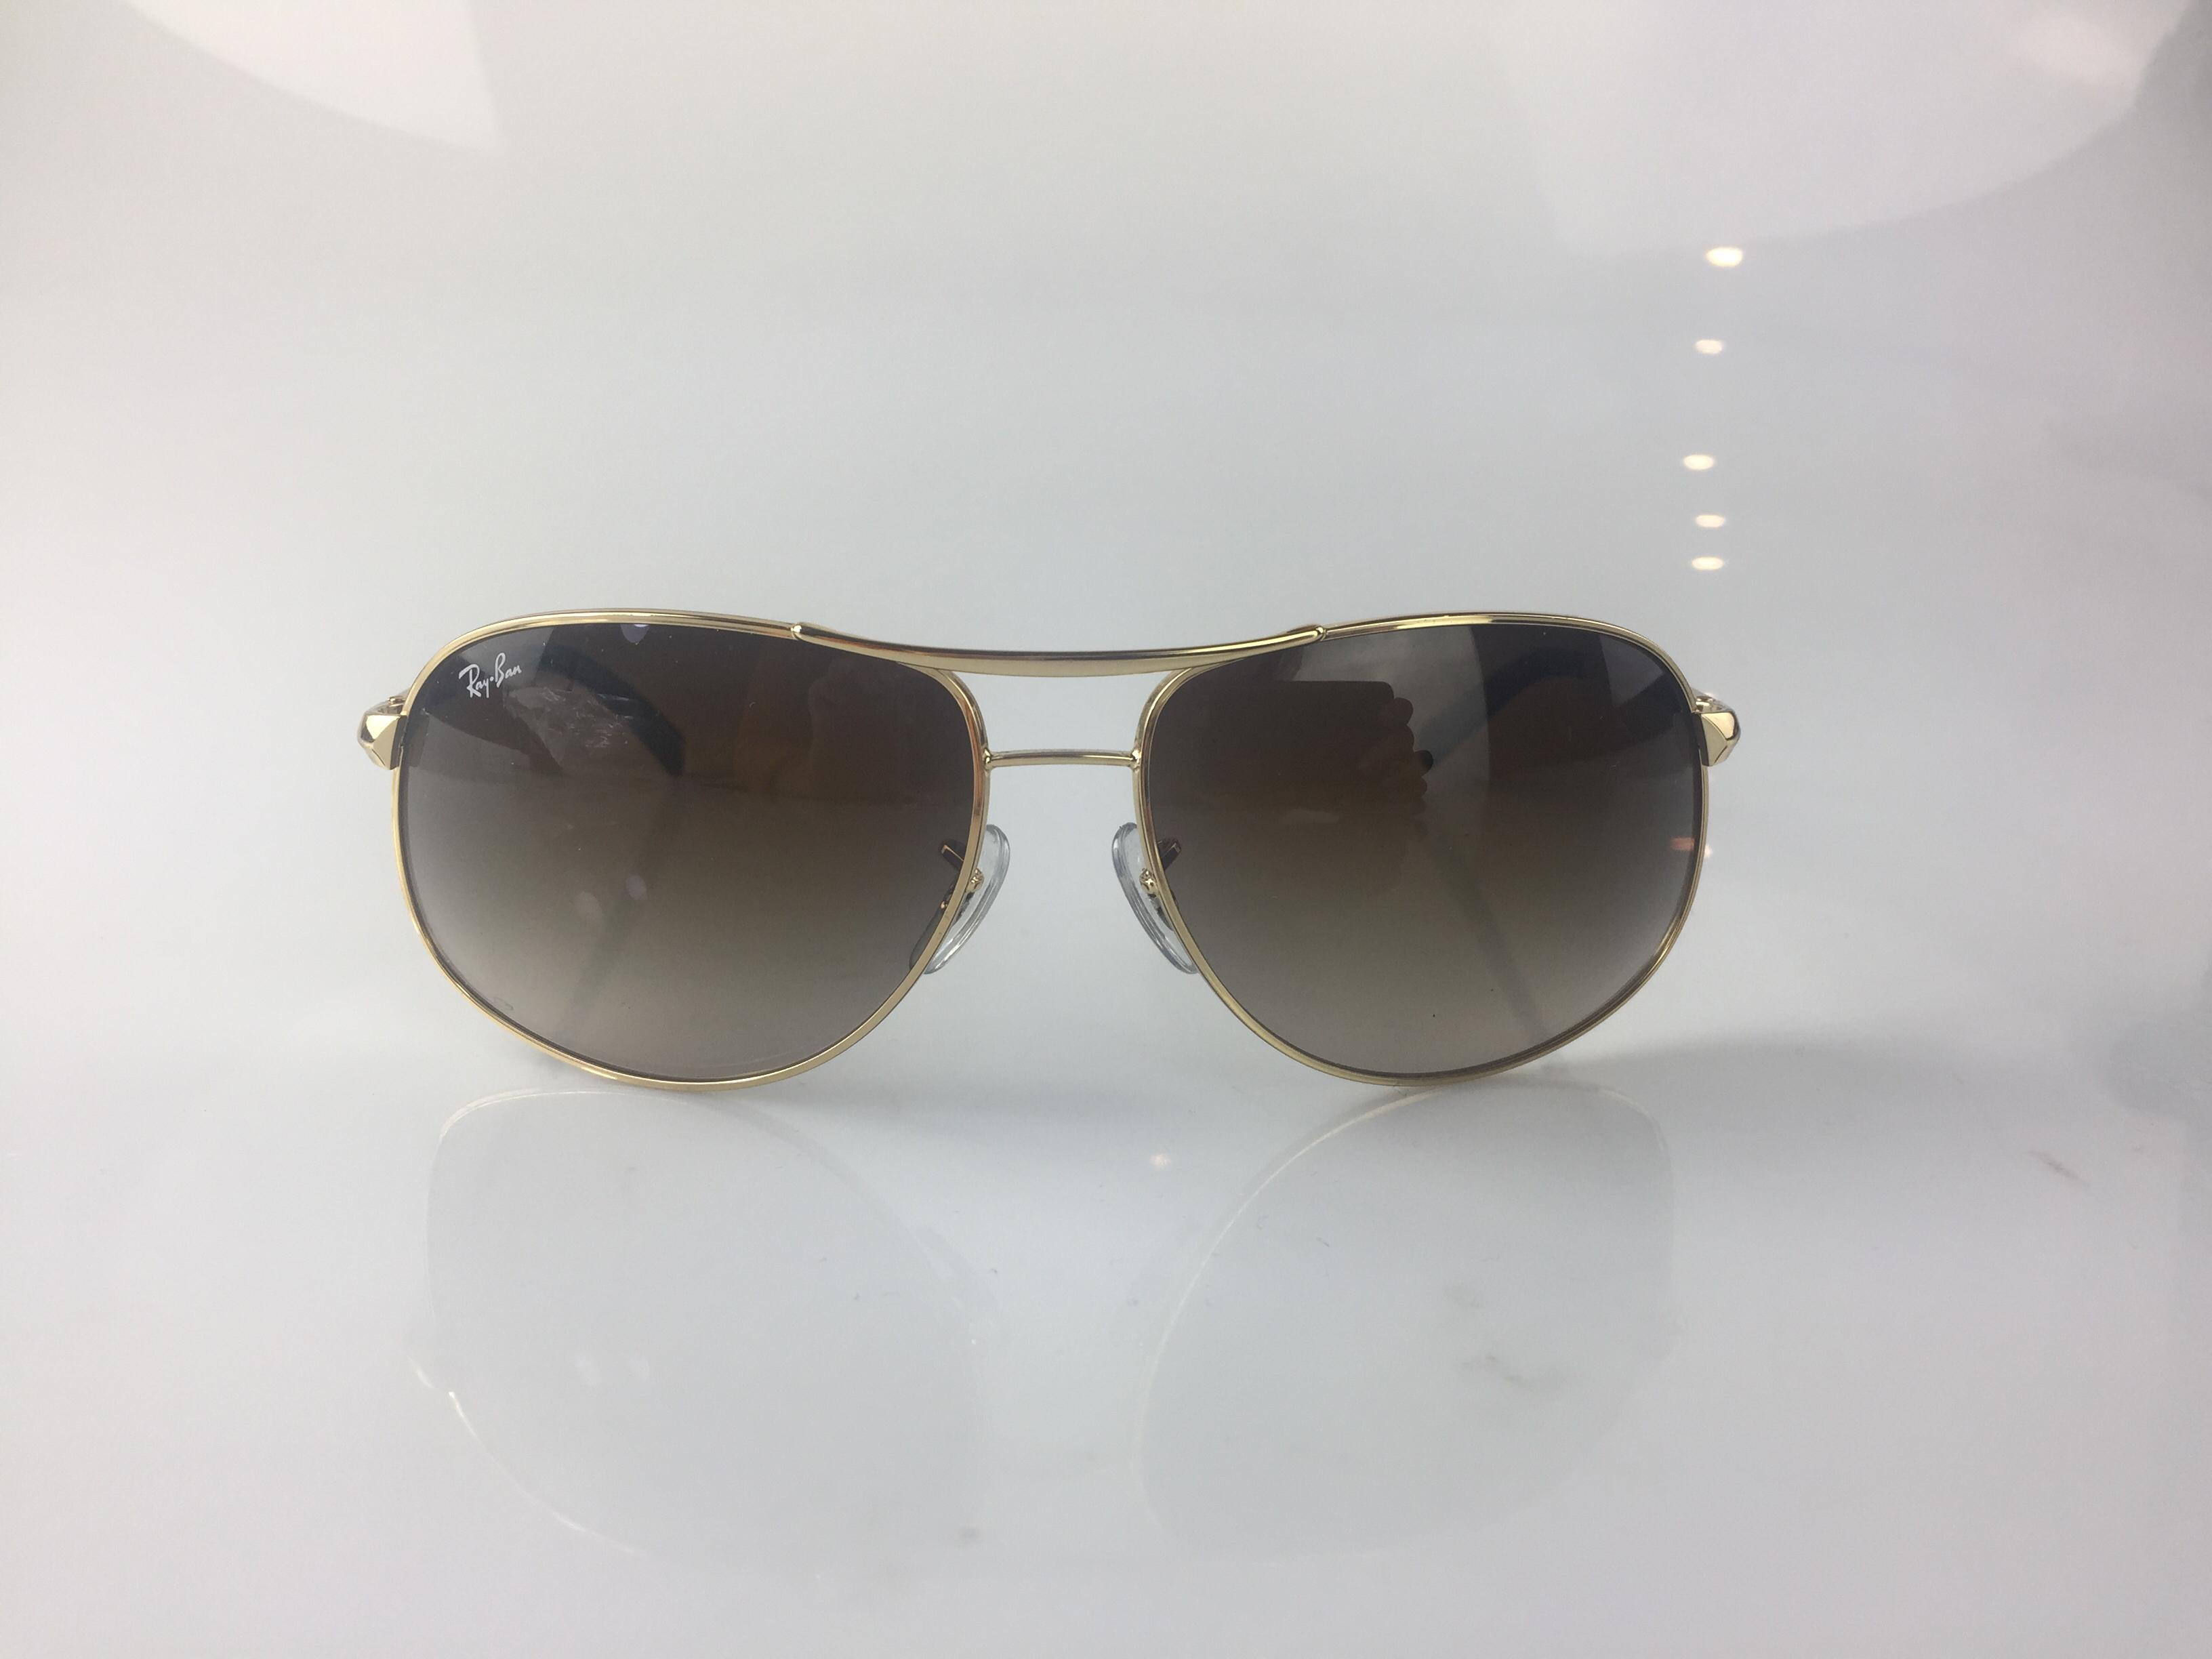 b61567a1a1 ... coupon code for ray ban rb 3387 sunglasses tradesy 76499 fb9be